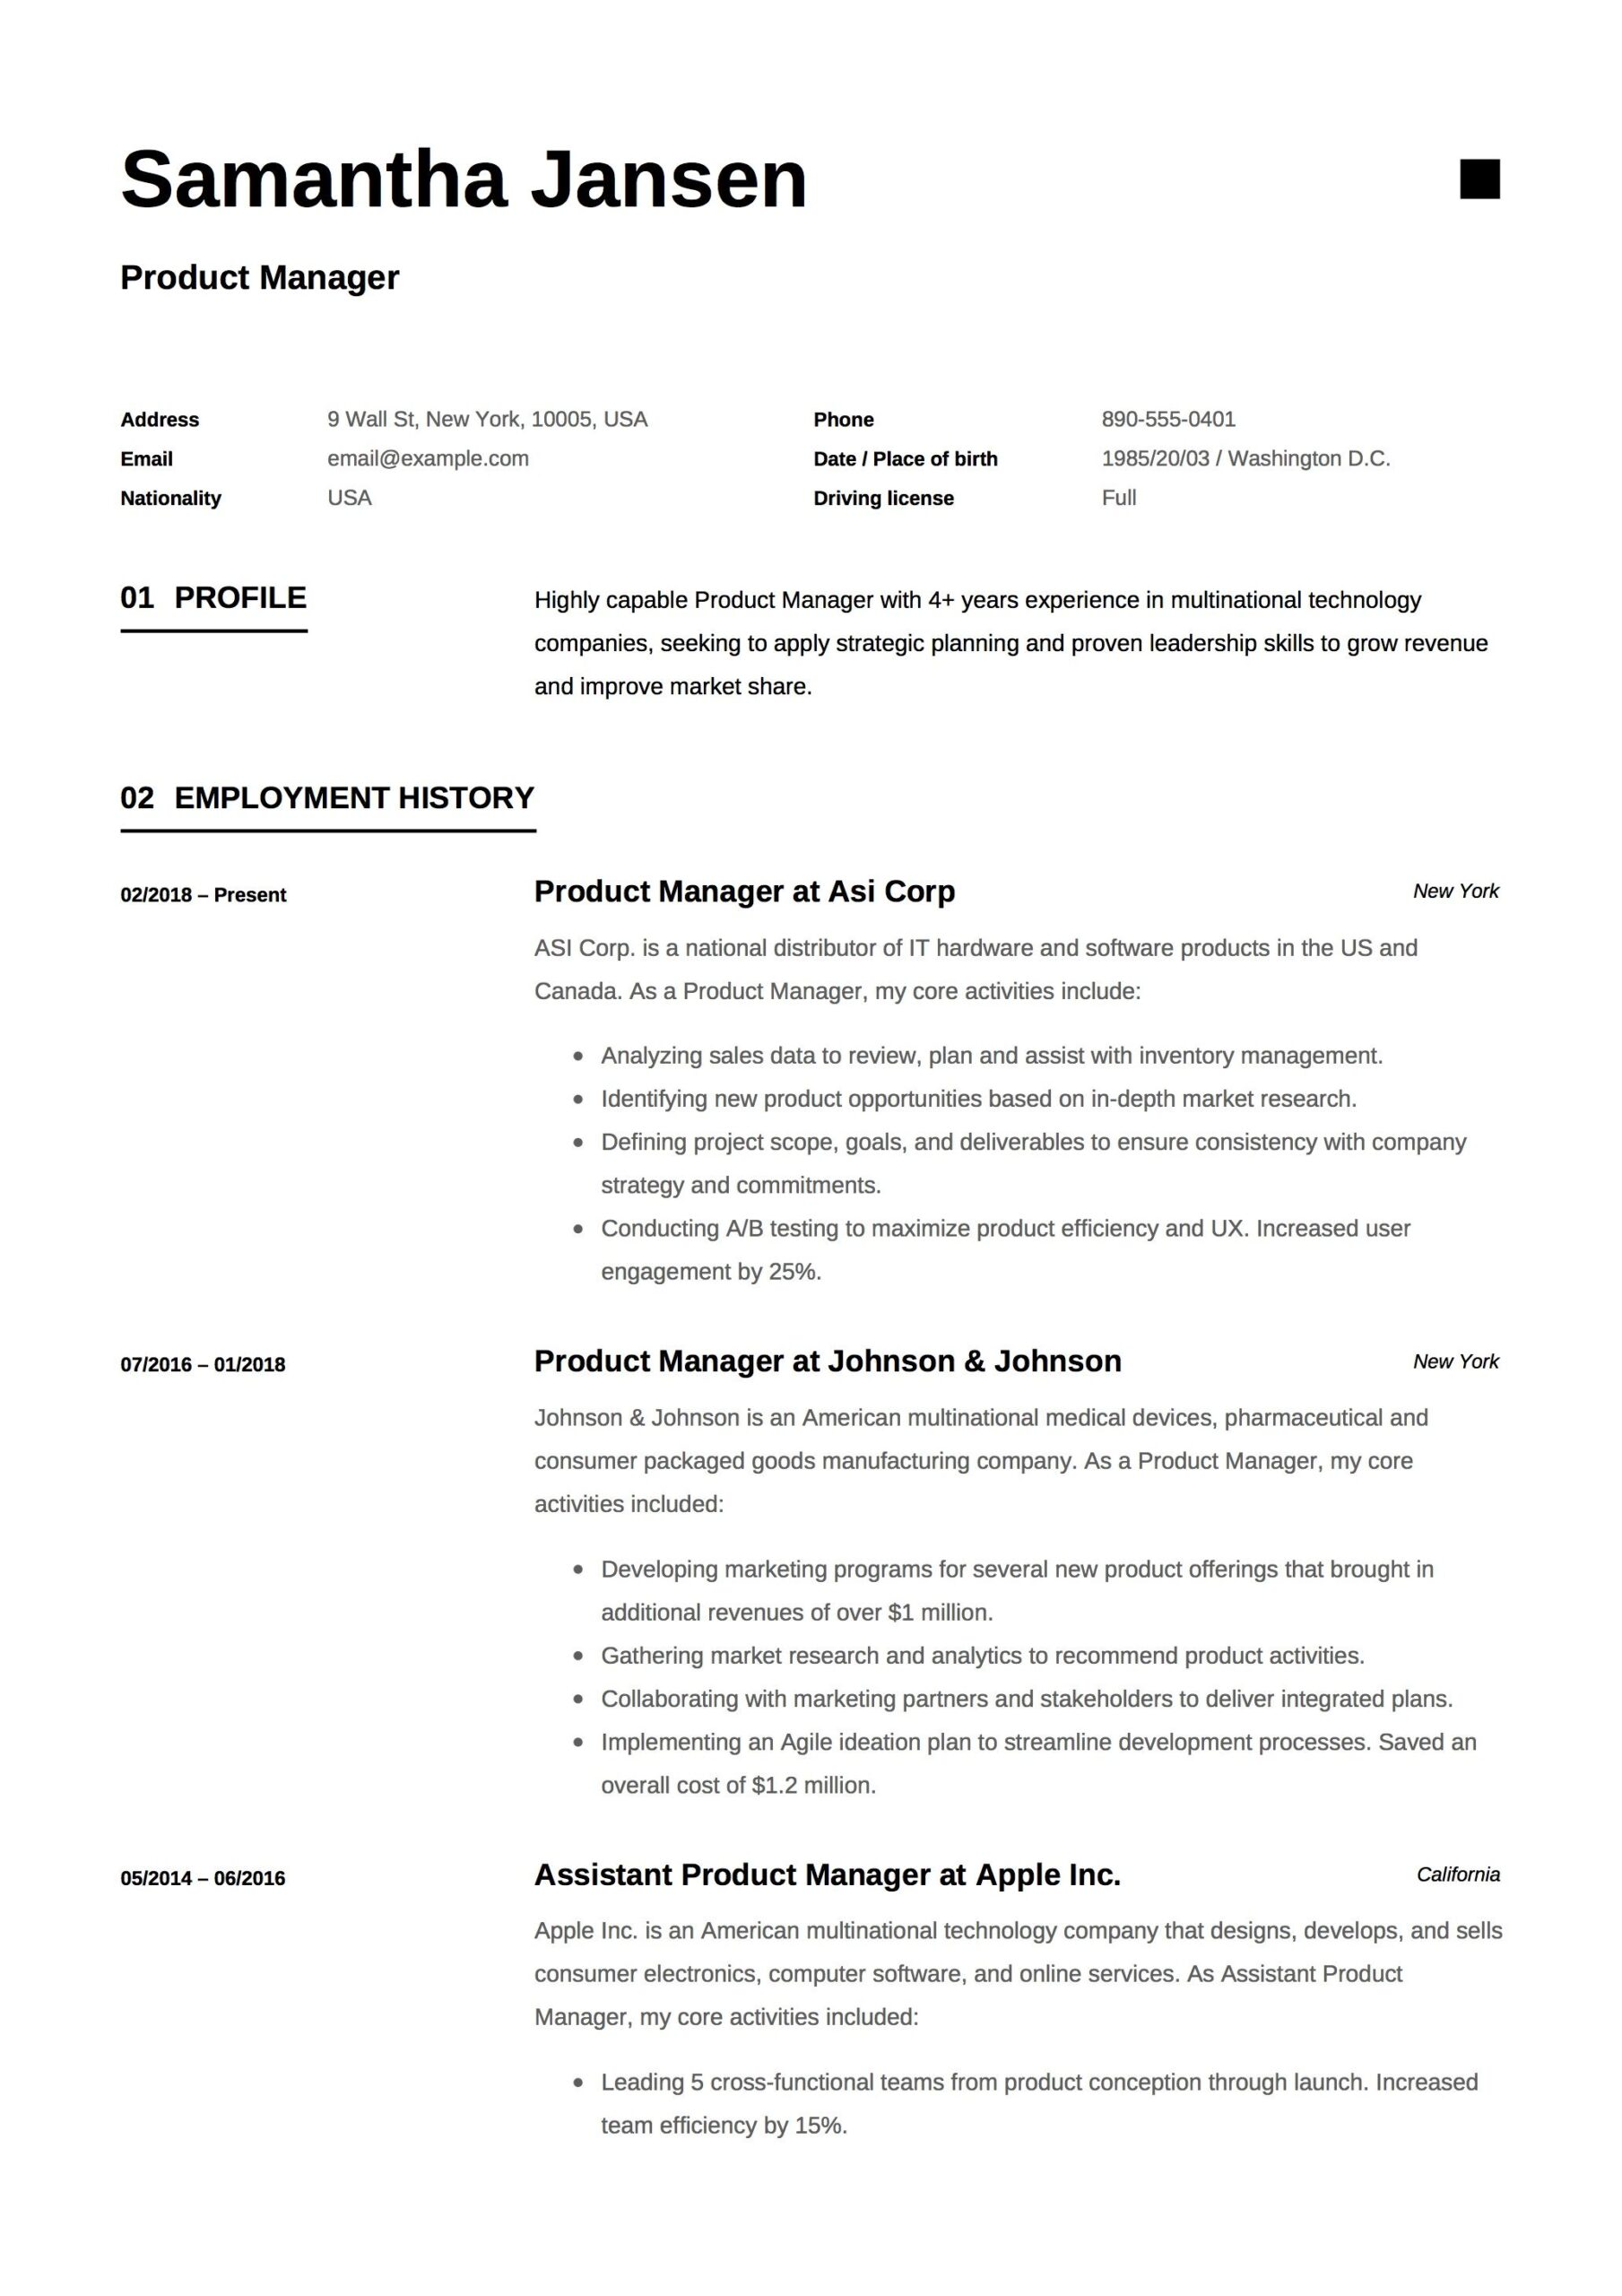 product manager resume sample template example cv formal design server guide for position Resume Resume For Product Manager Position